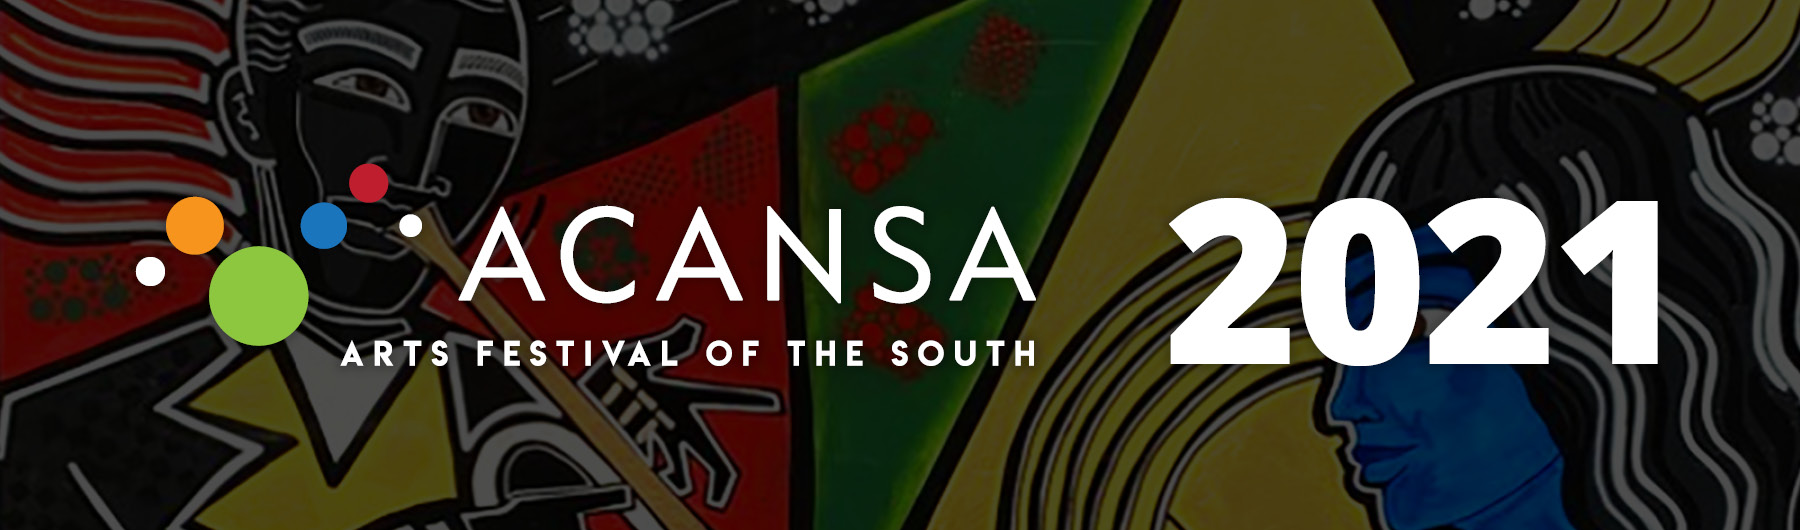 2021 ACANSA Arts Festival of the South